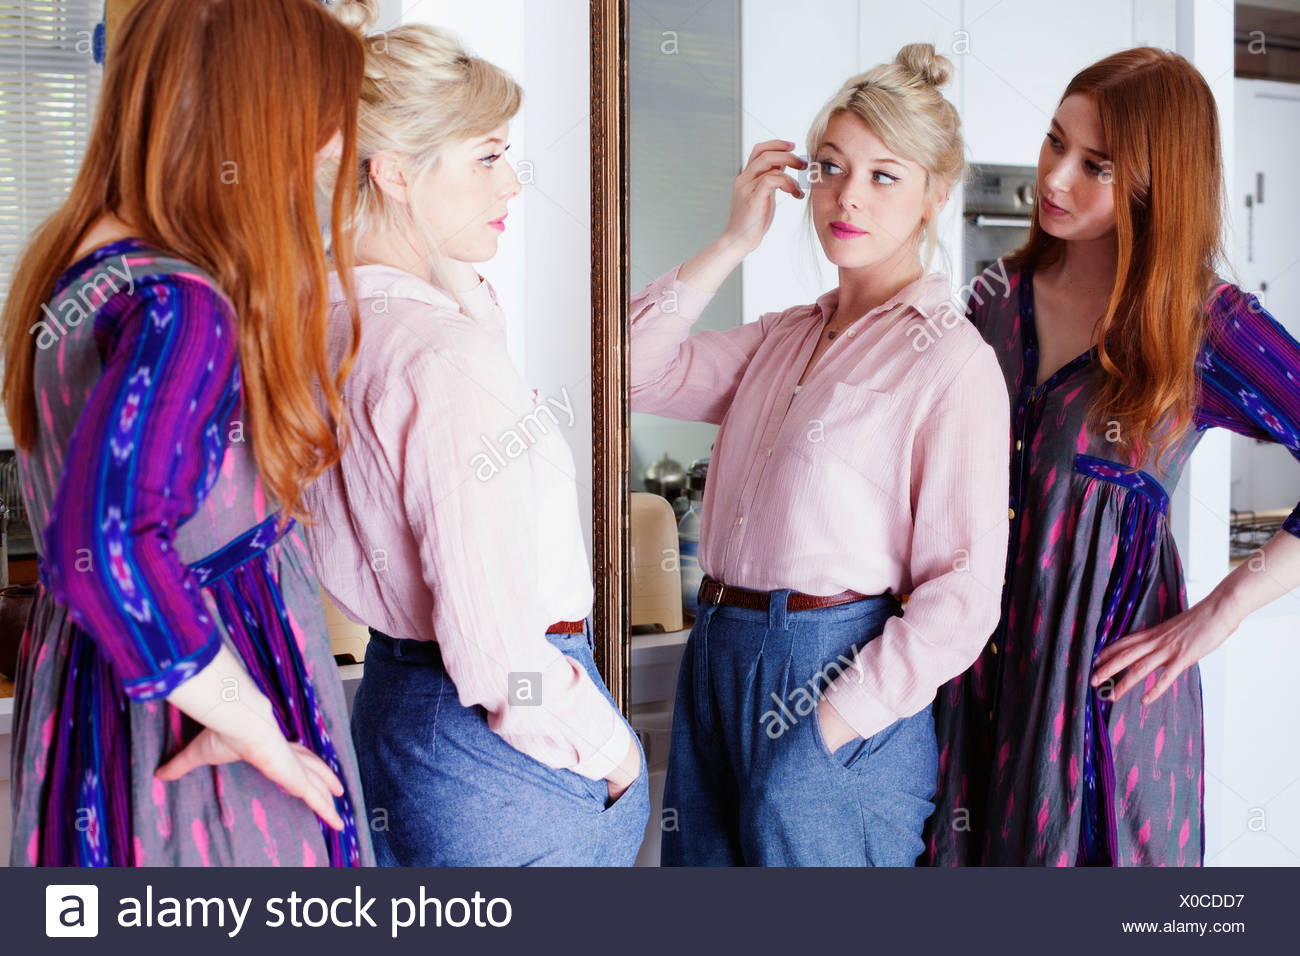 Young women looking in mirror - Stock Image